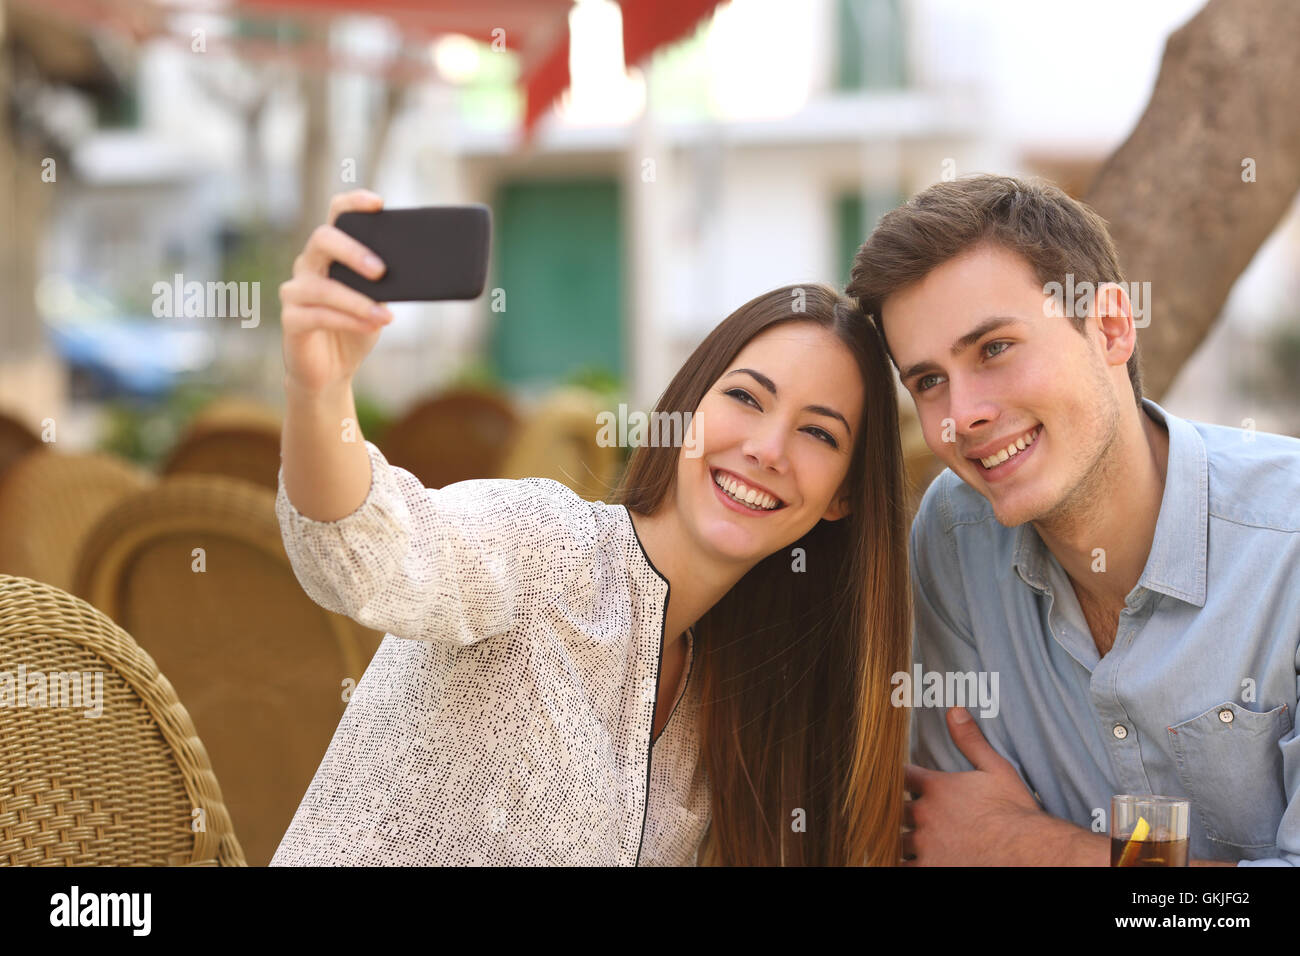 How to take a selfie for dating sites